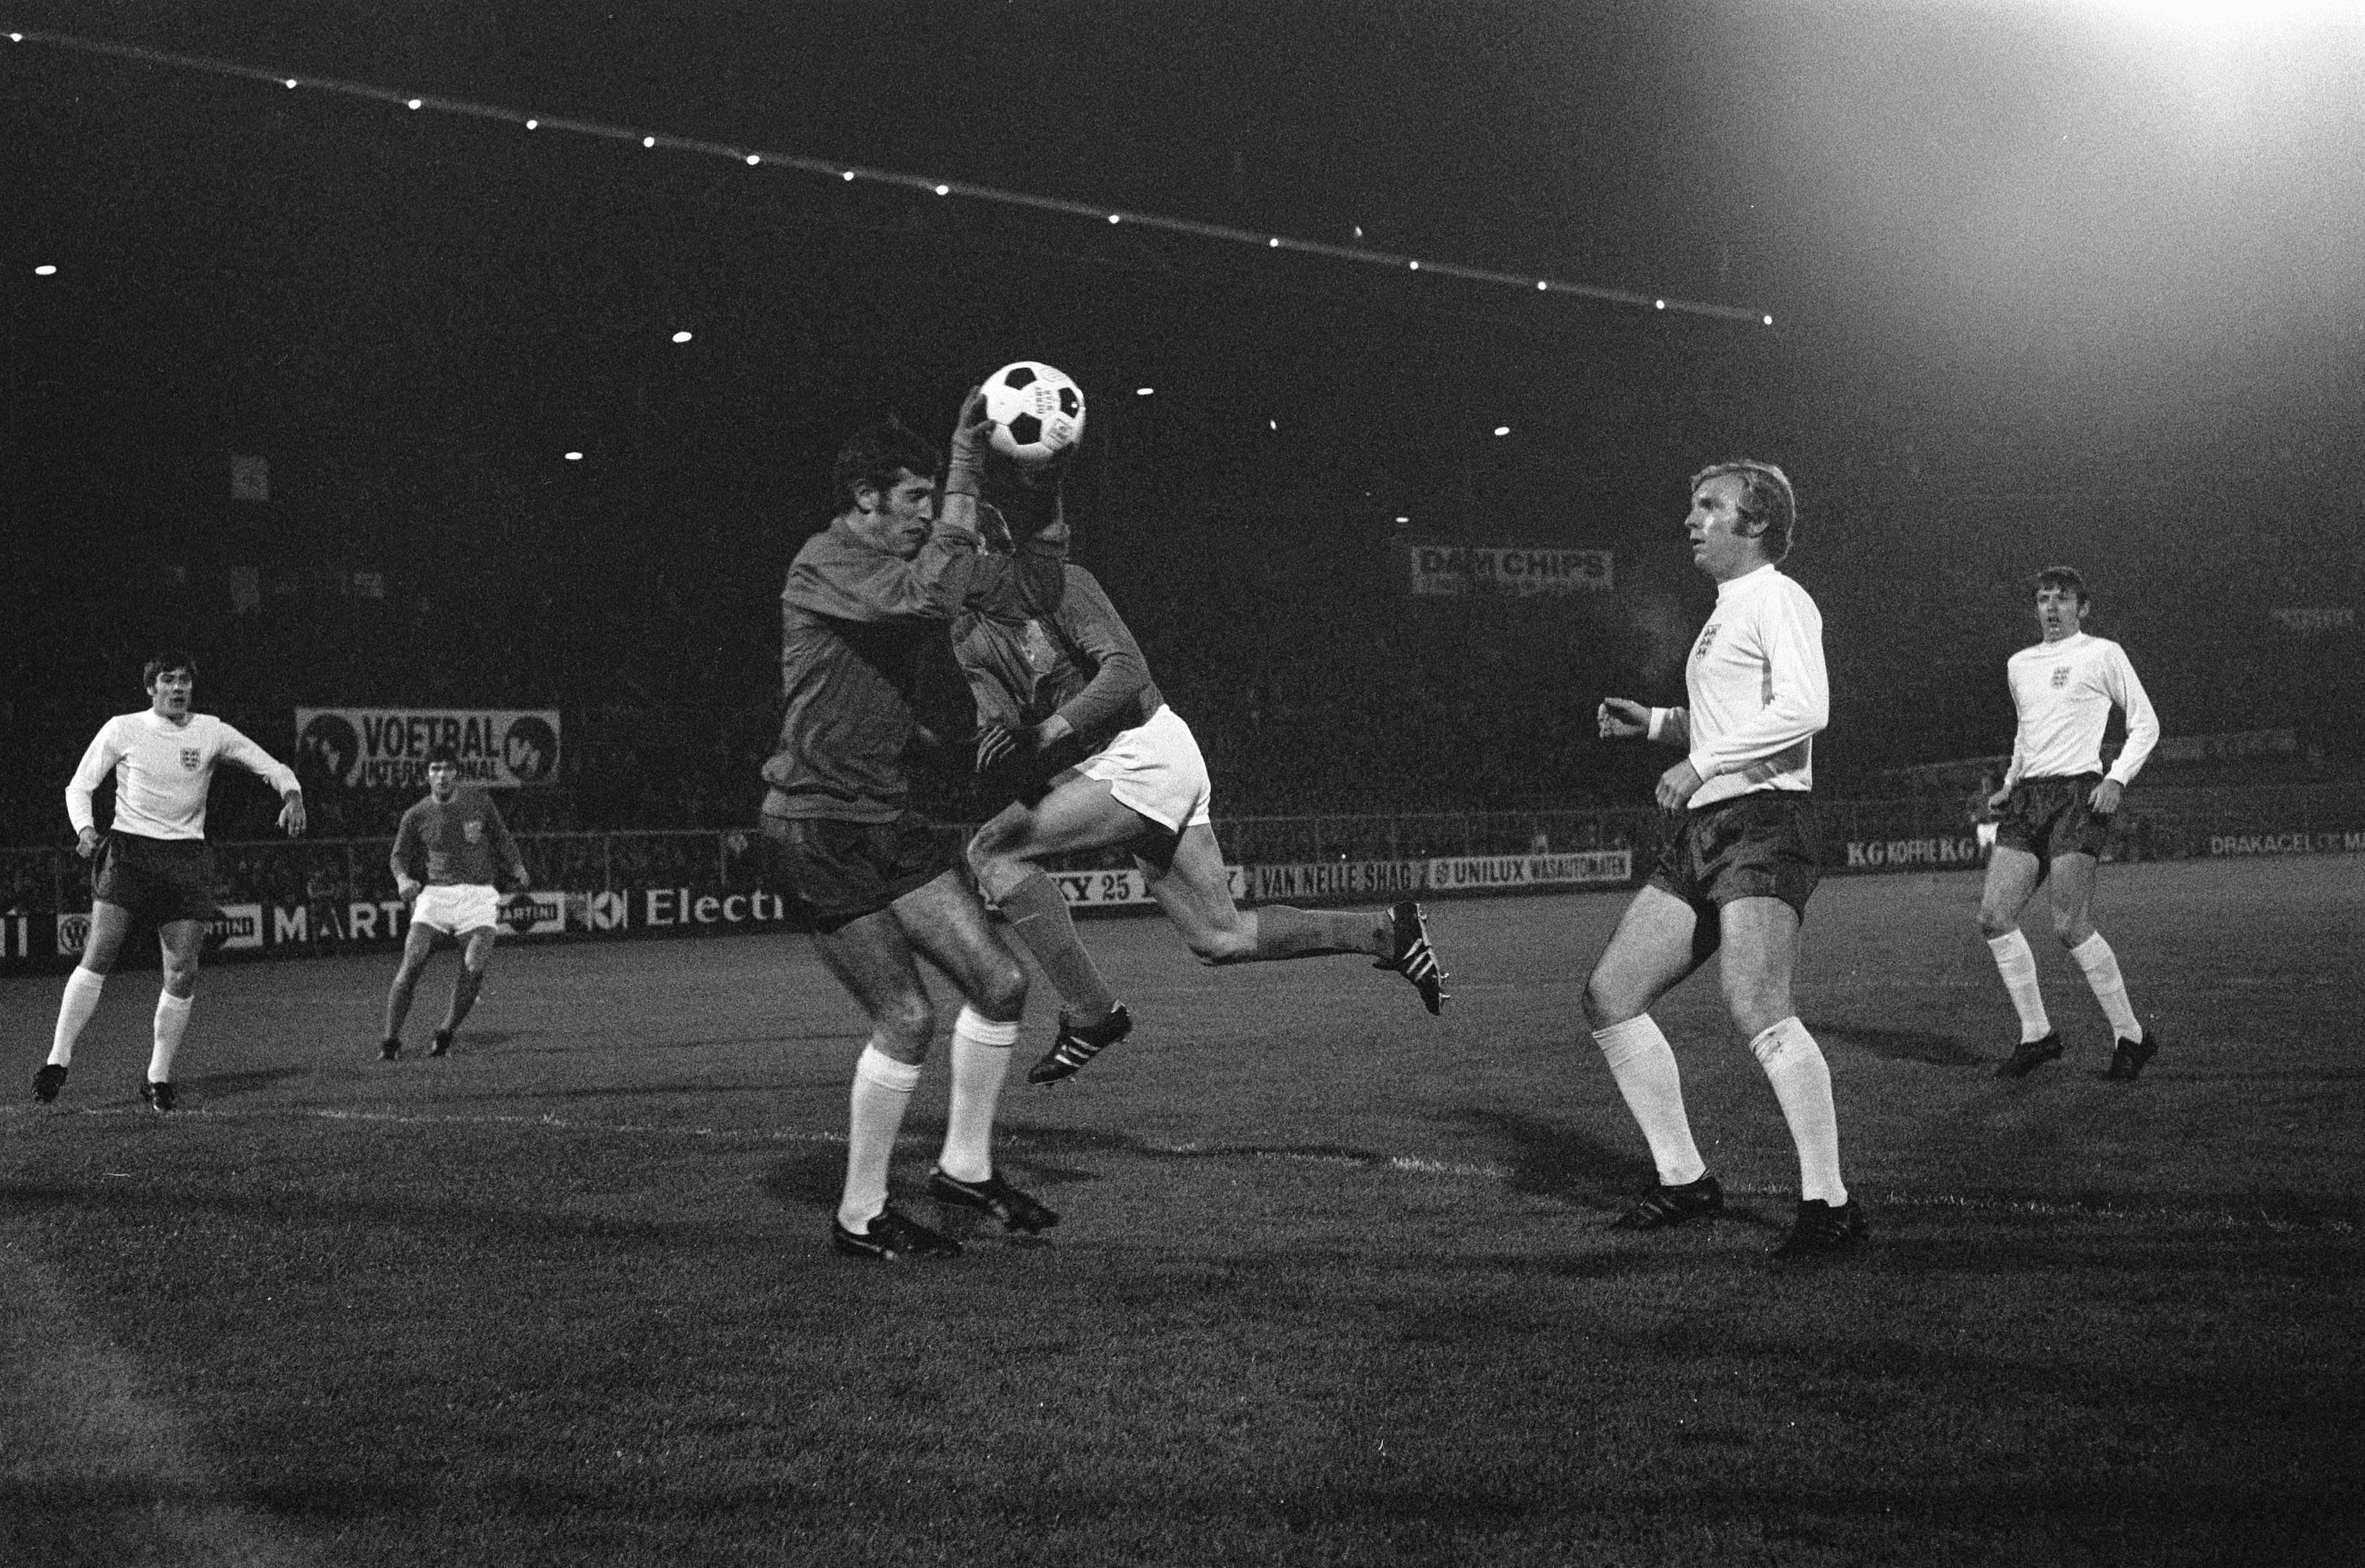 Bobby Moore in action for England. Source: By Koch, Eric / Anefo (Gahetna in het nationnal archief) [CC BY-SA 3.0 nl (https://creativecommons.org/licenses/by-sa/3.0/nl/deed.en)], via Wikimedia Commons